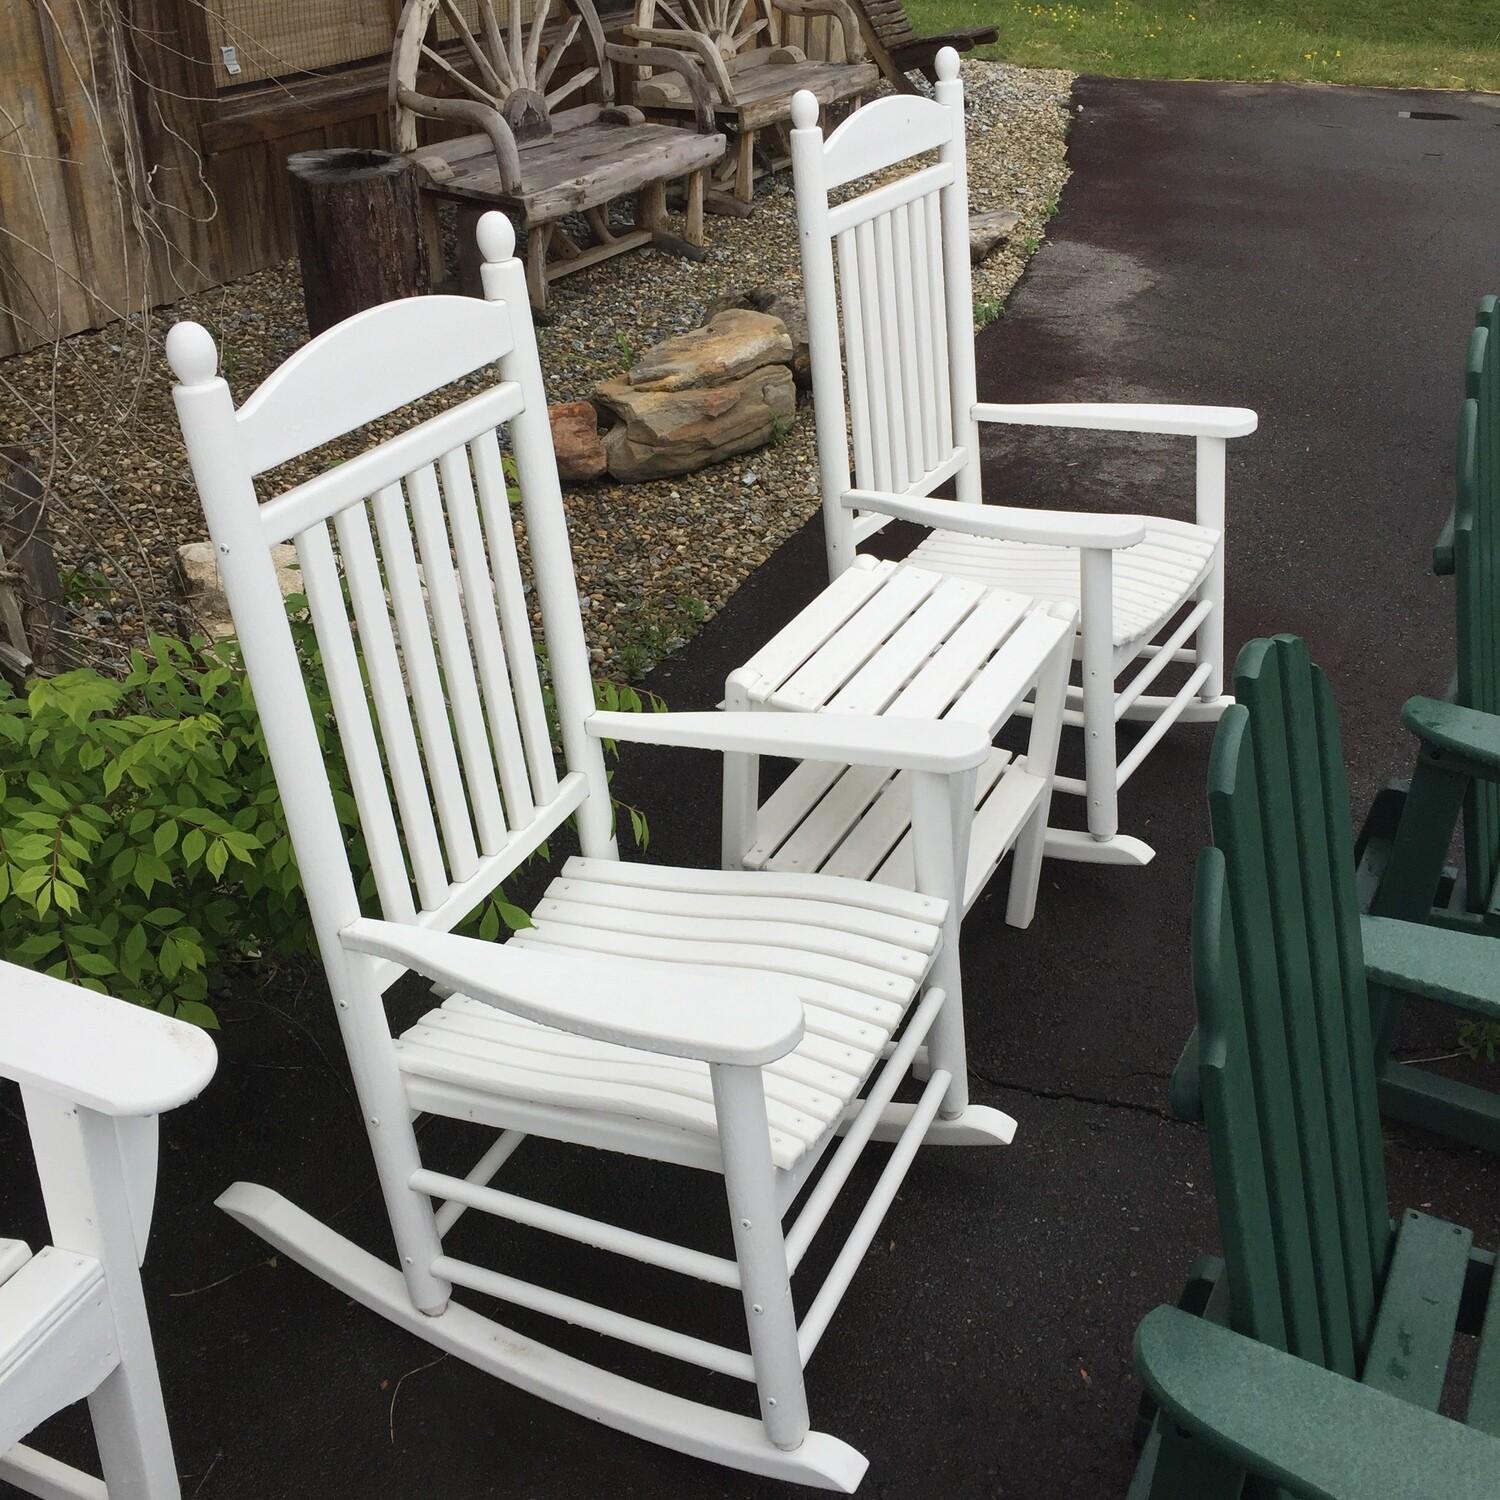 rocker Set with matching table  CALL FOR SPECIAL PRICE